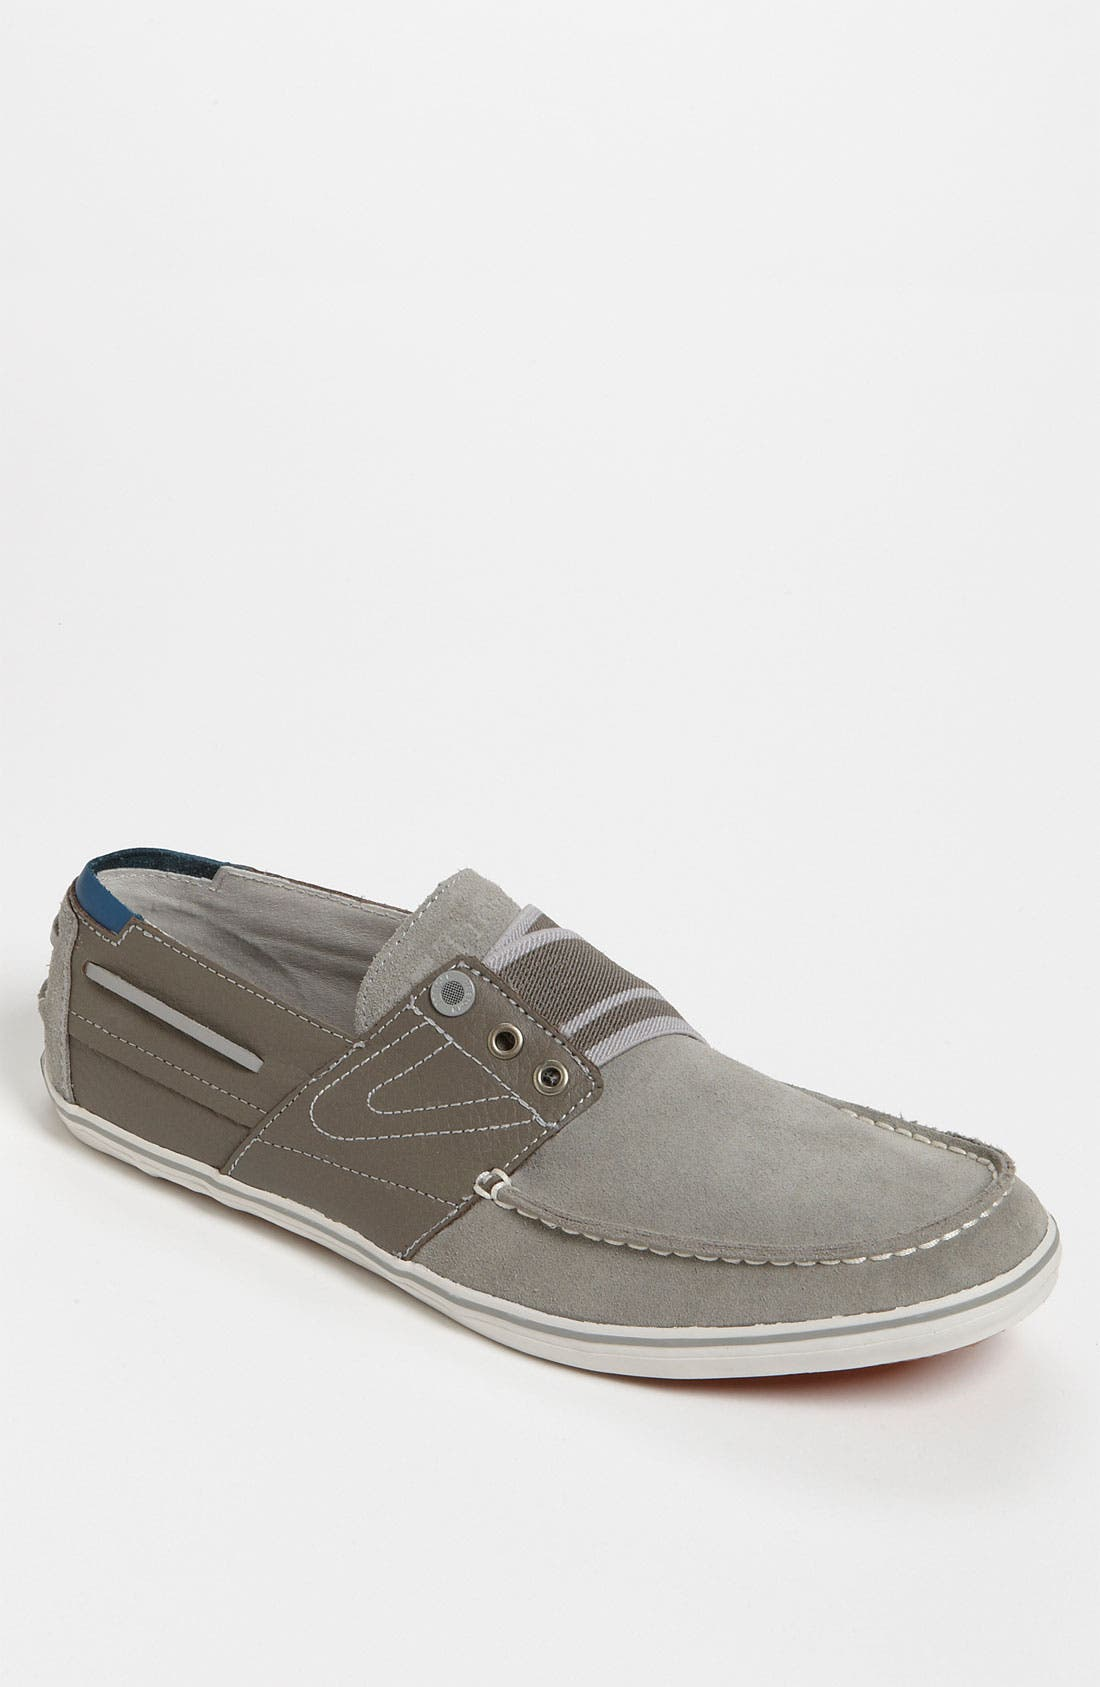 Alternate Image 1 Selected - Tretorn 'Smogensson' Suede & Leather Slip-On